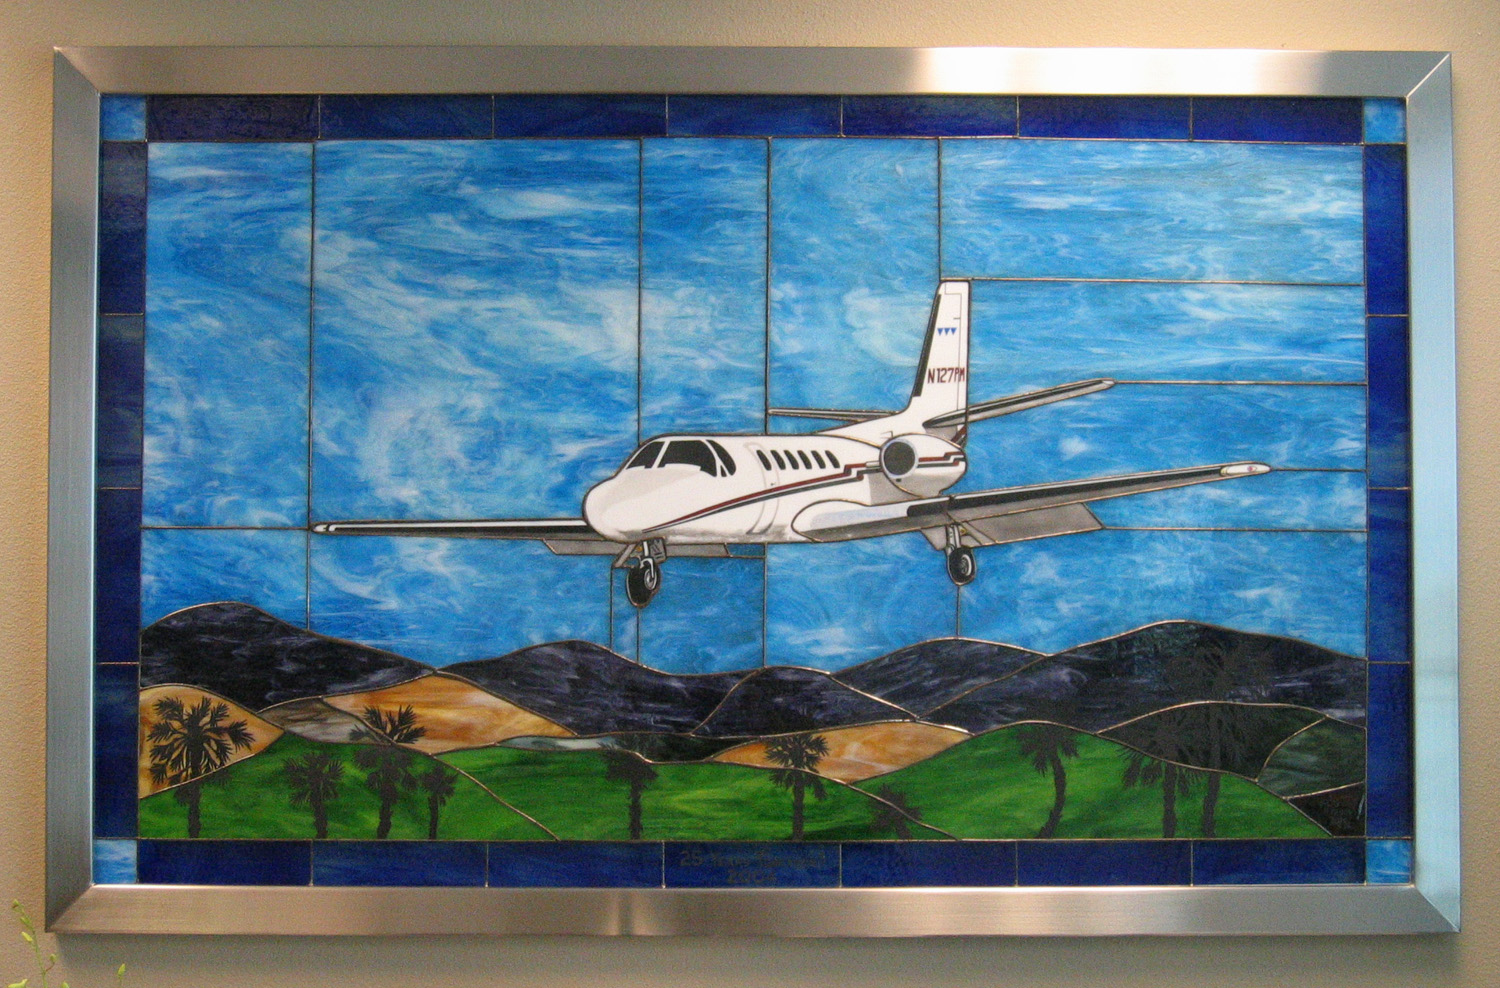 Aviation Stained Glass Artwork for Business